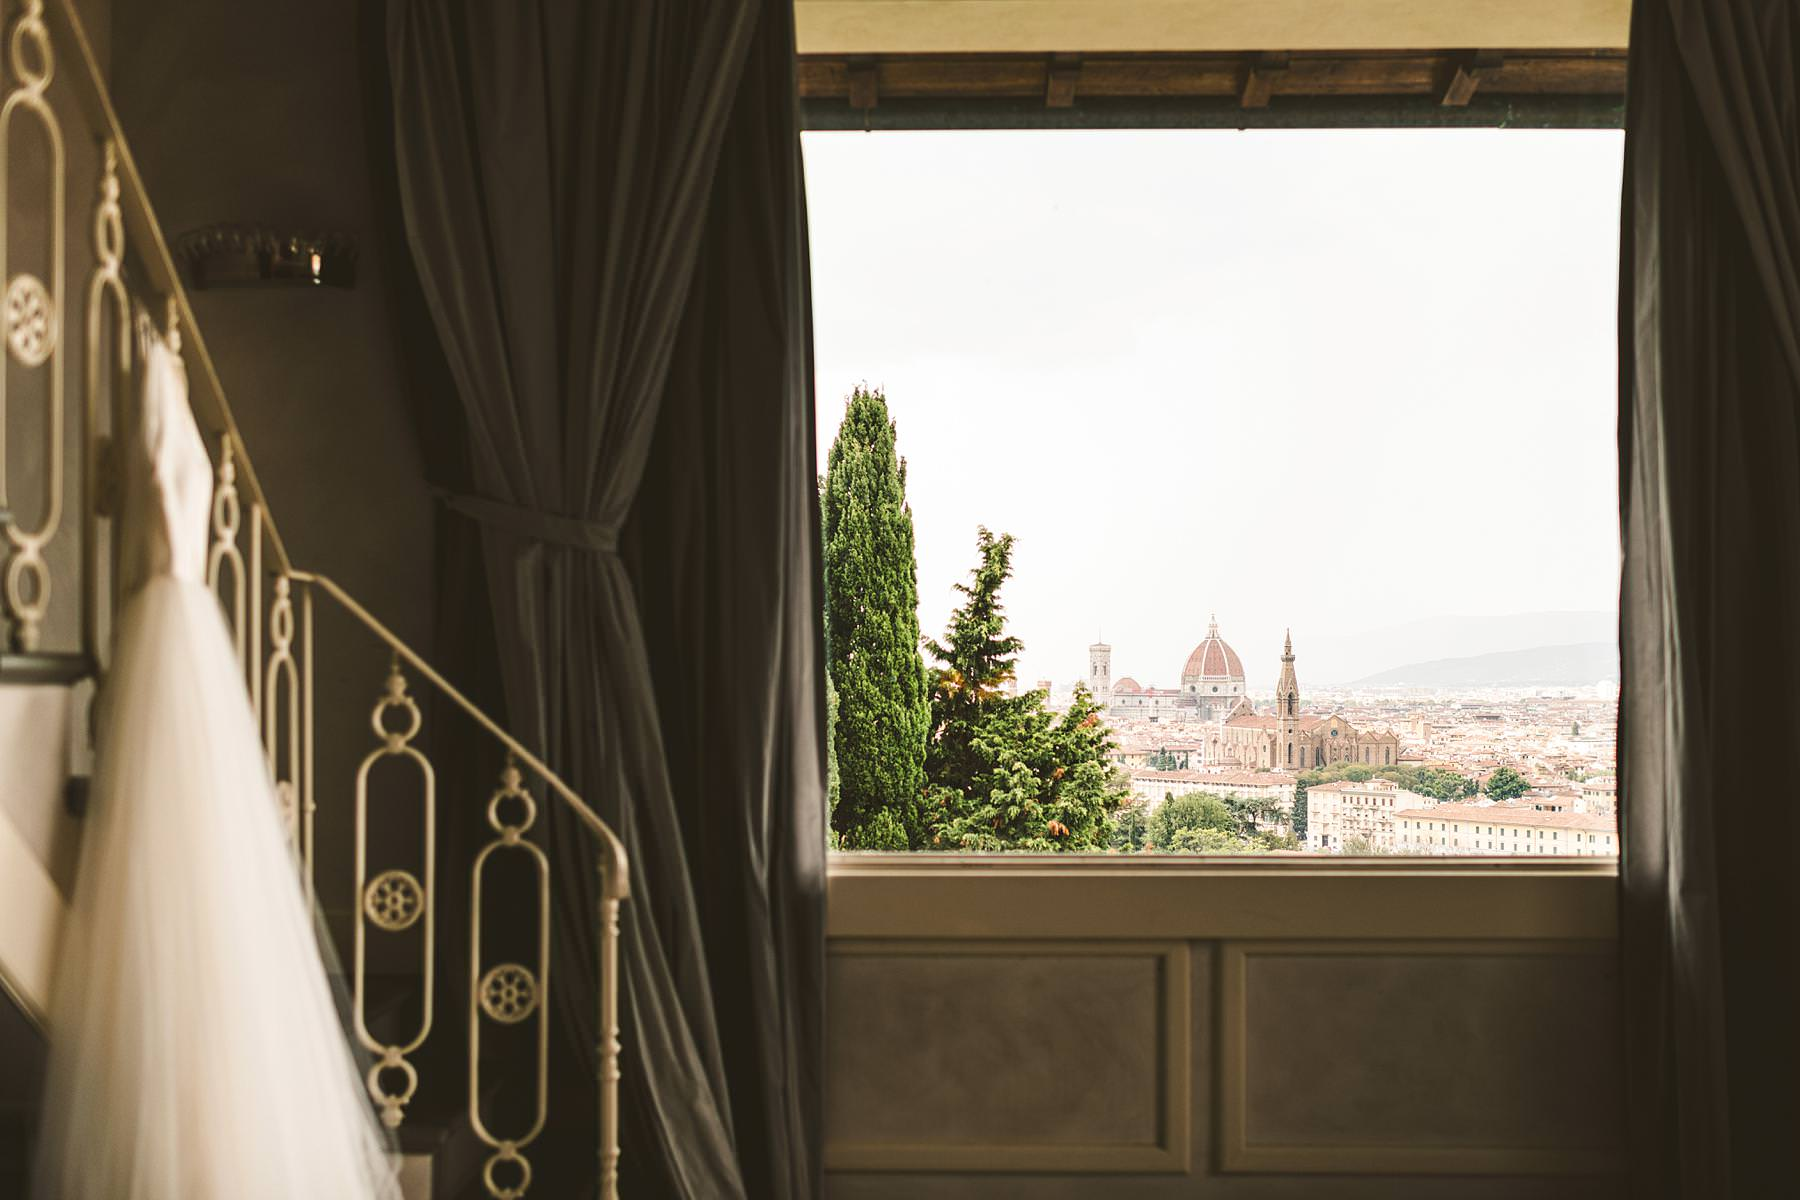 If you want to get married in Florence and you're looking for a venue that will leave your guests and yourself speechless, Villa La Vedetta is the place for you